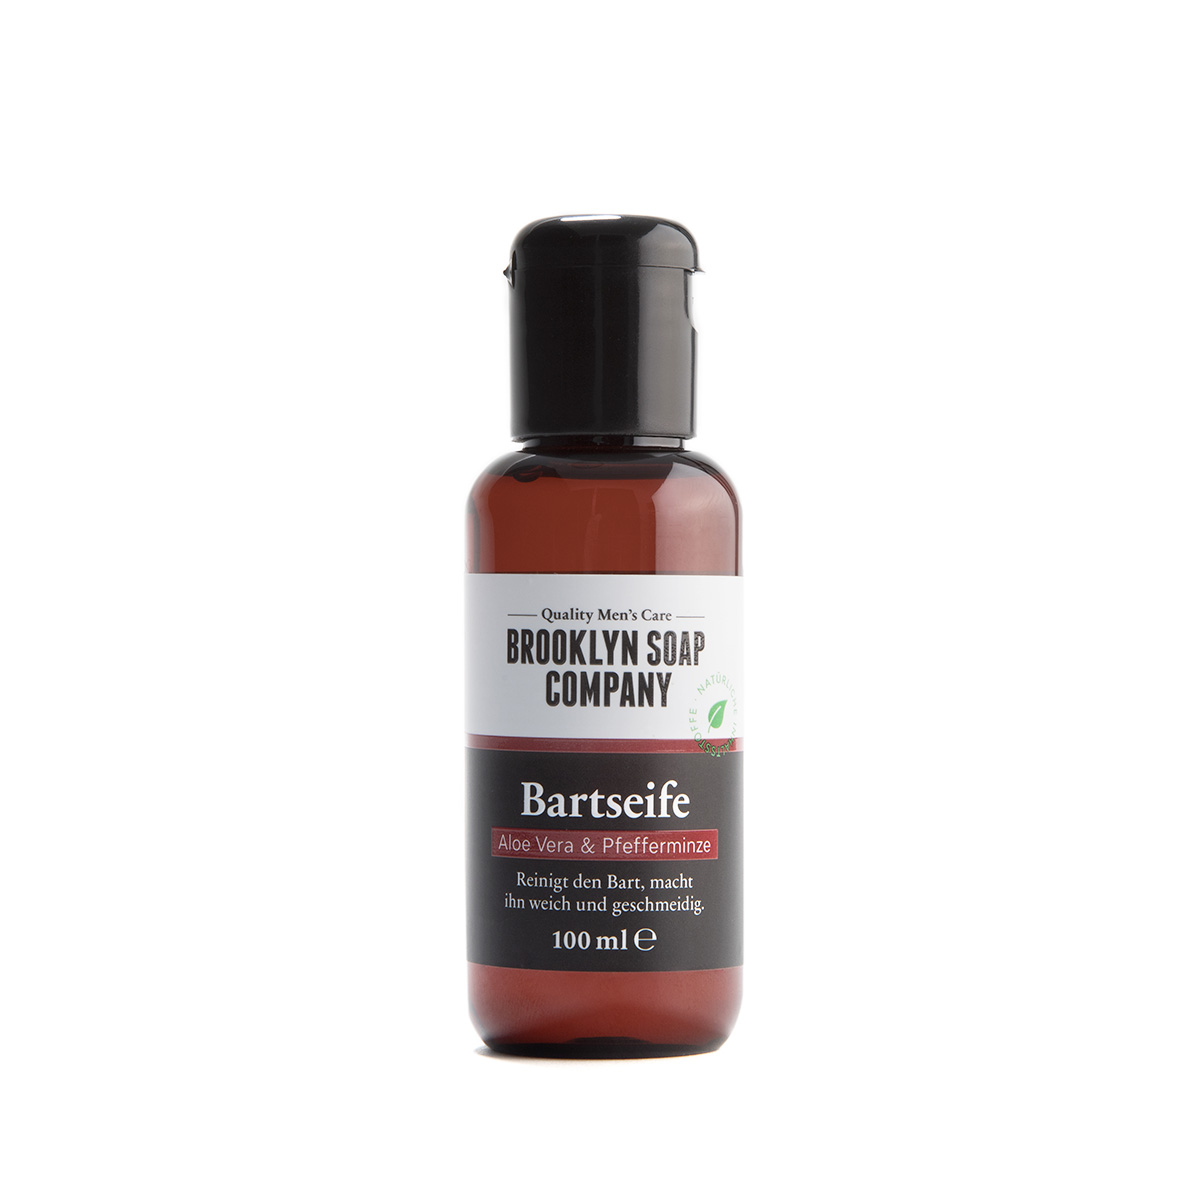 Bartseife (100 ml)